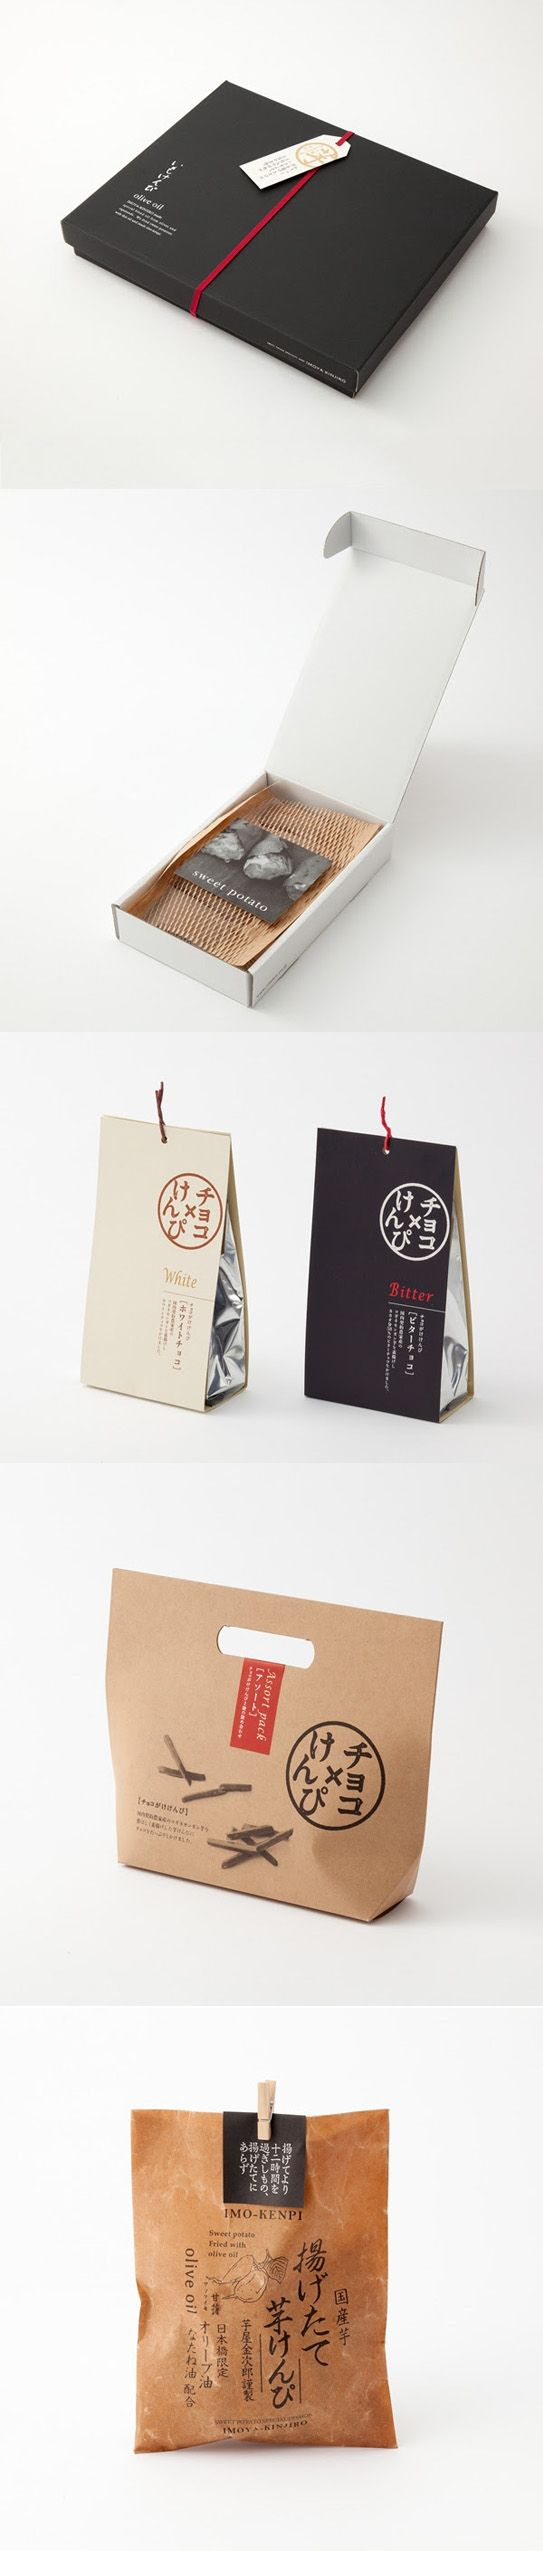 Unique Packaging Design on the Internet, Imoya Kinjiro #packagingdesign #packaging #design                                                                                                                                                                                 More